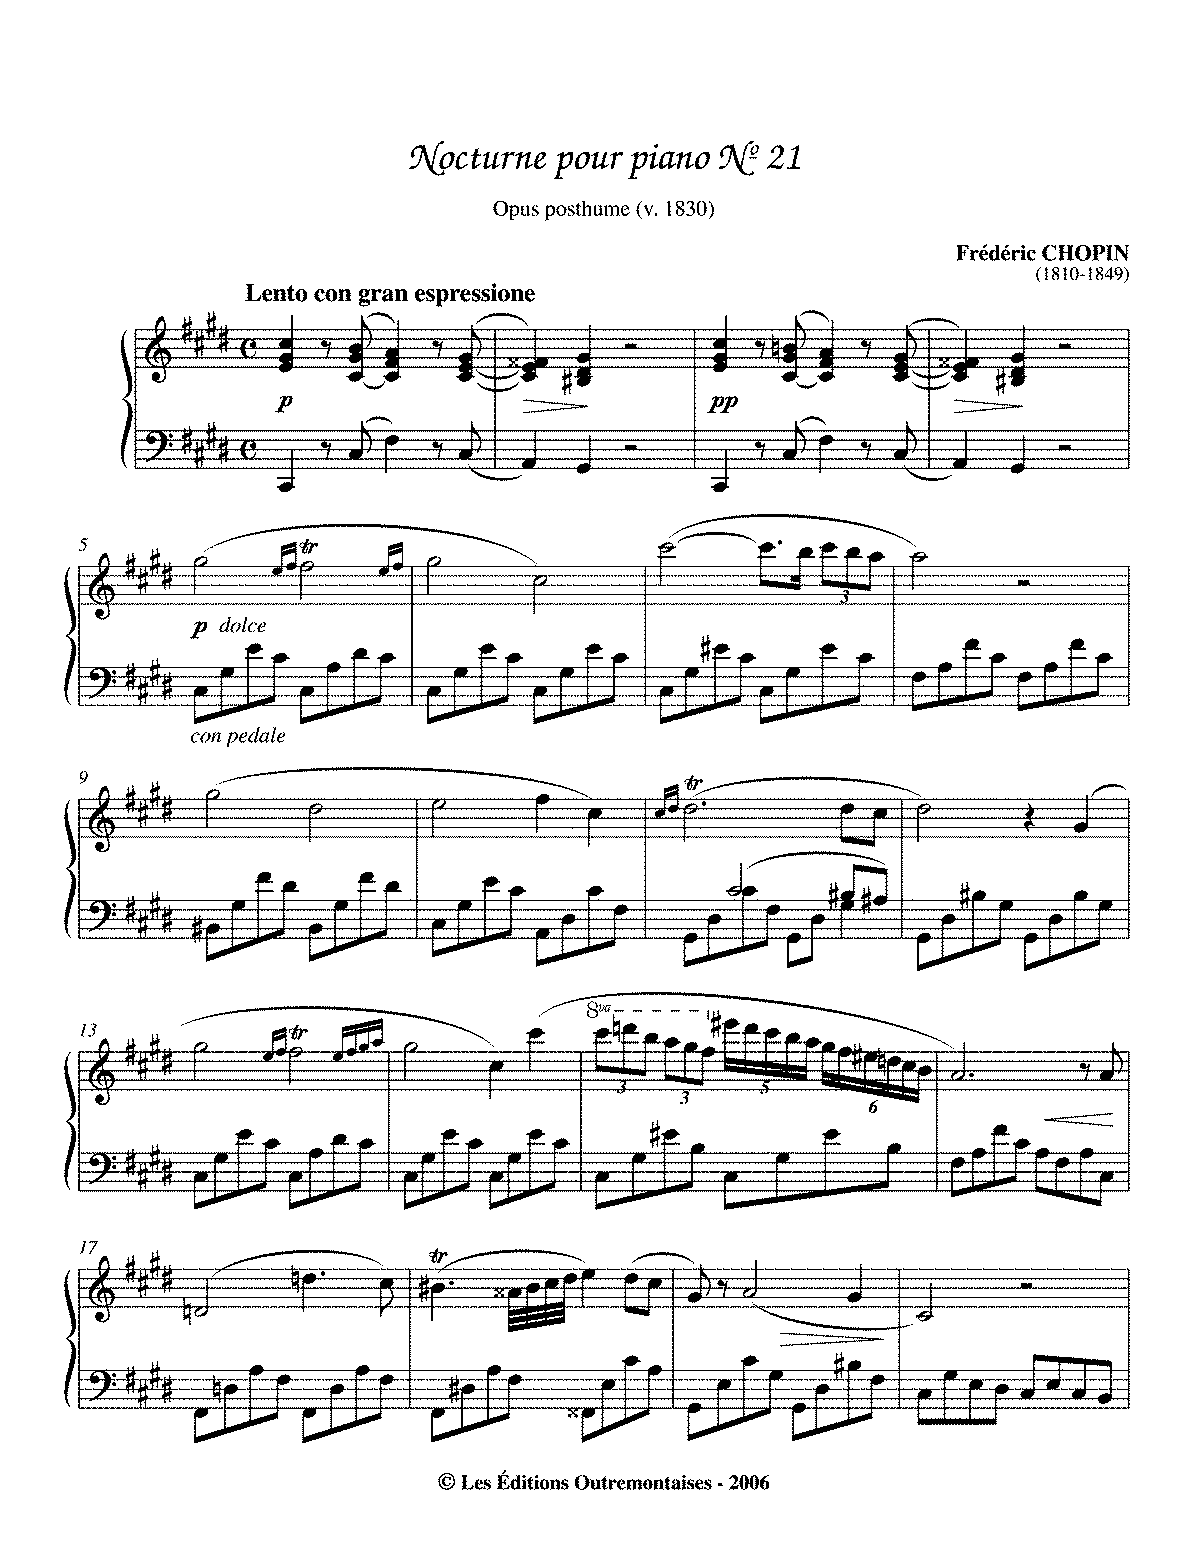 nocturne no 9 chopin sheet music pdf